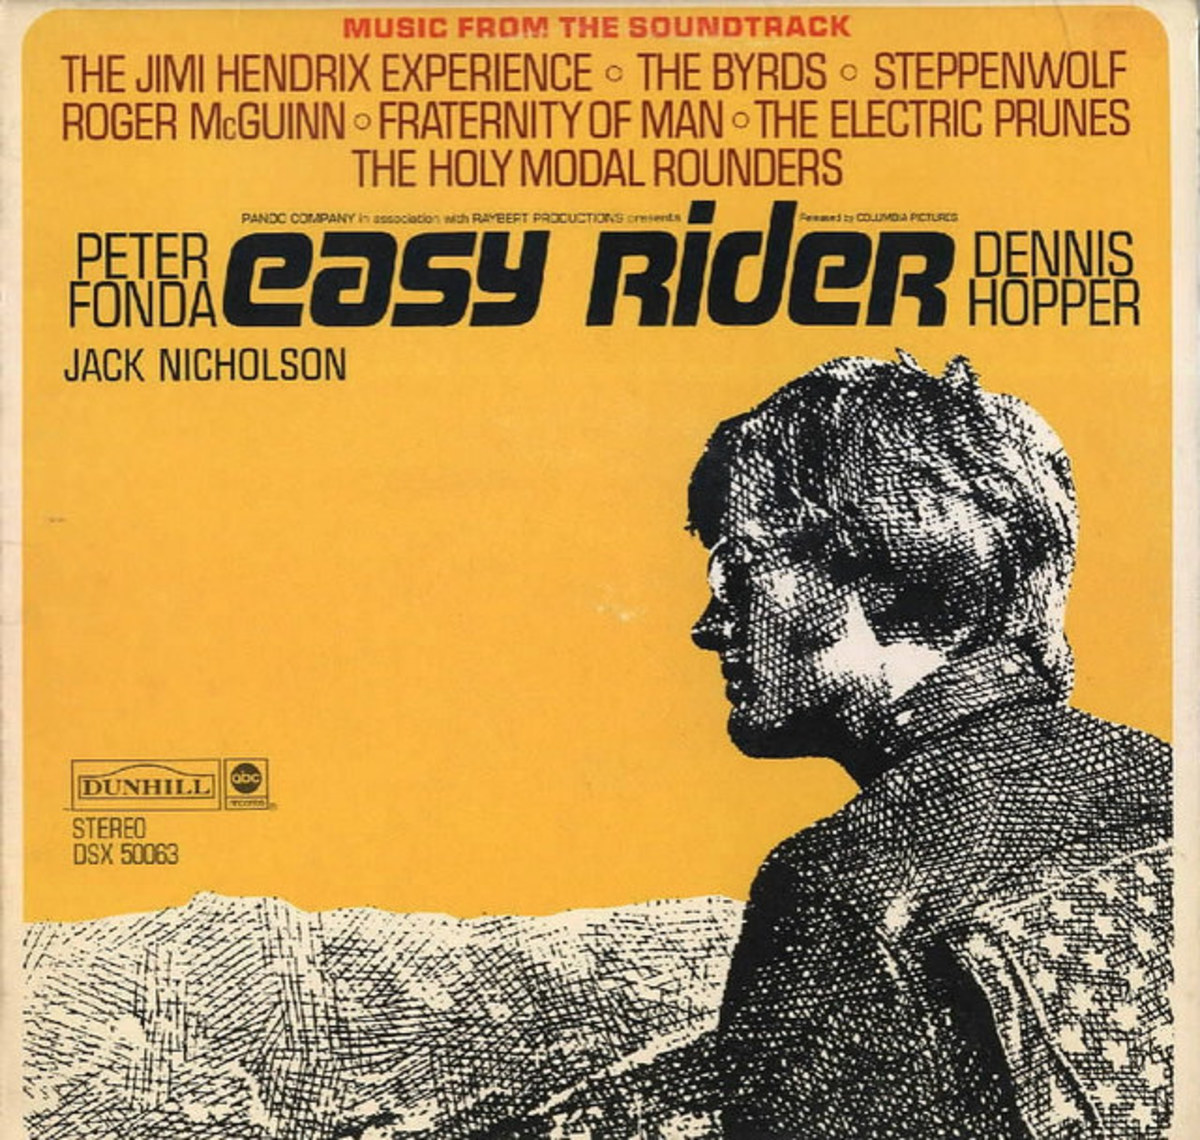 "Easy Rider ABC Dunhill Records DSX 5083 12"" Vinyl Record, Original Soundtrack Recording US Pressing (1969) Peter Fonda, Dennis Hopper, Jack Nicholson"